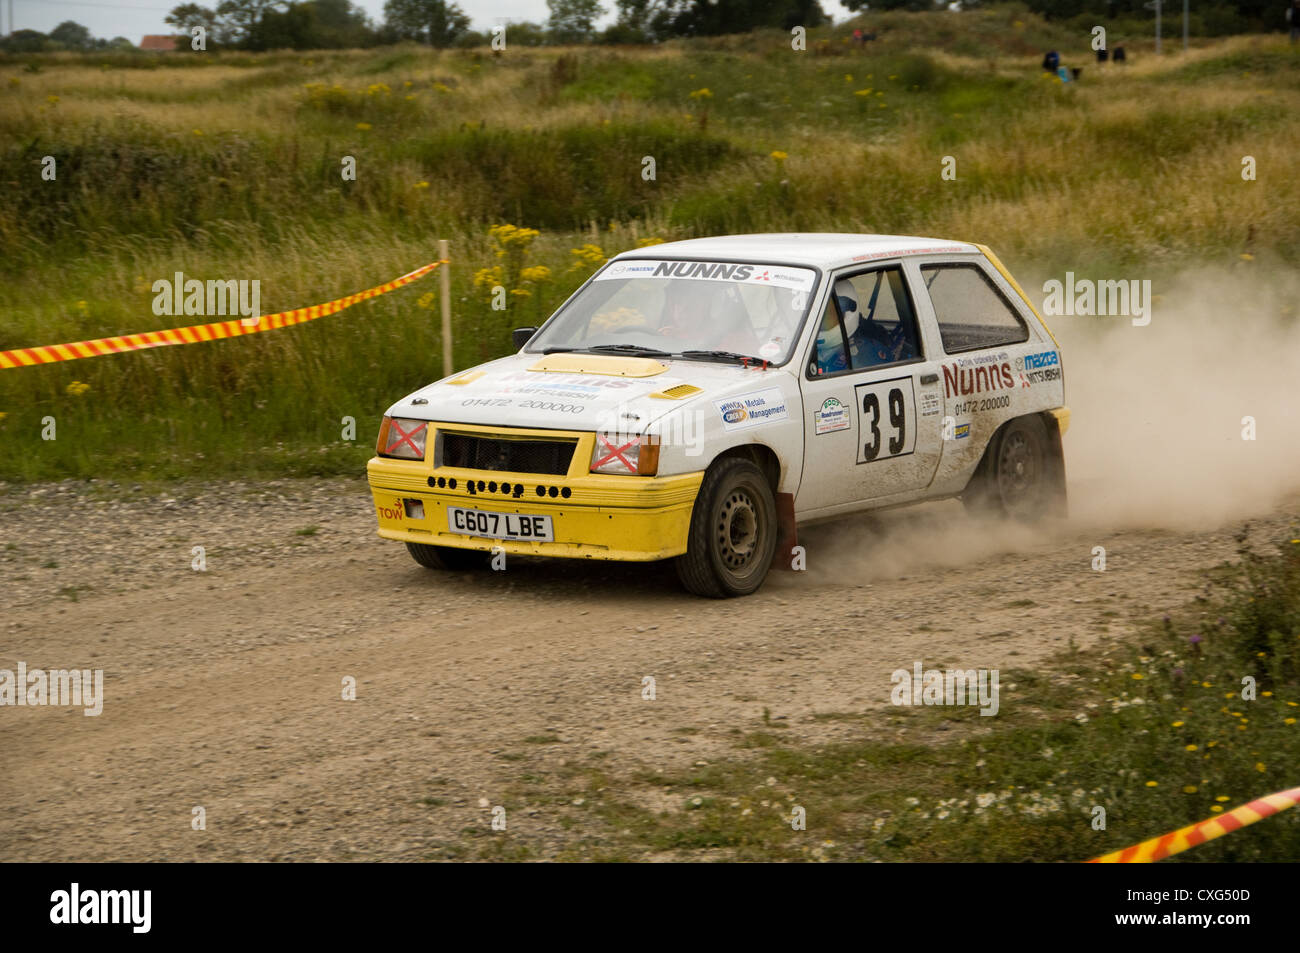 Vauxhall Nova rally car Stock Photo: 50756957 - Alamy